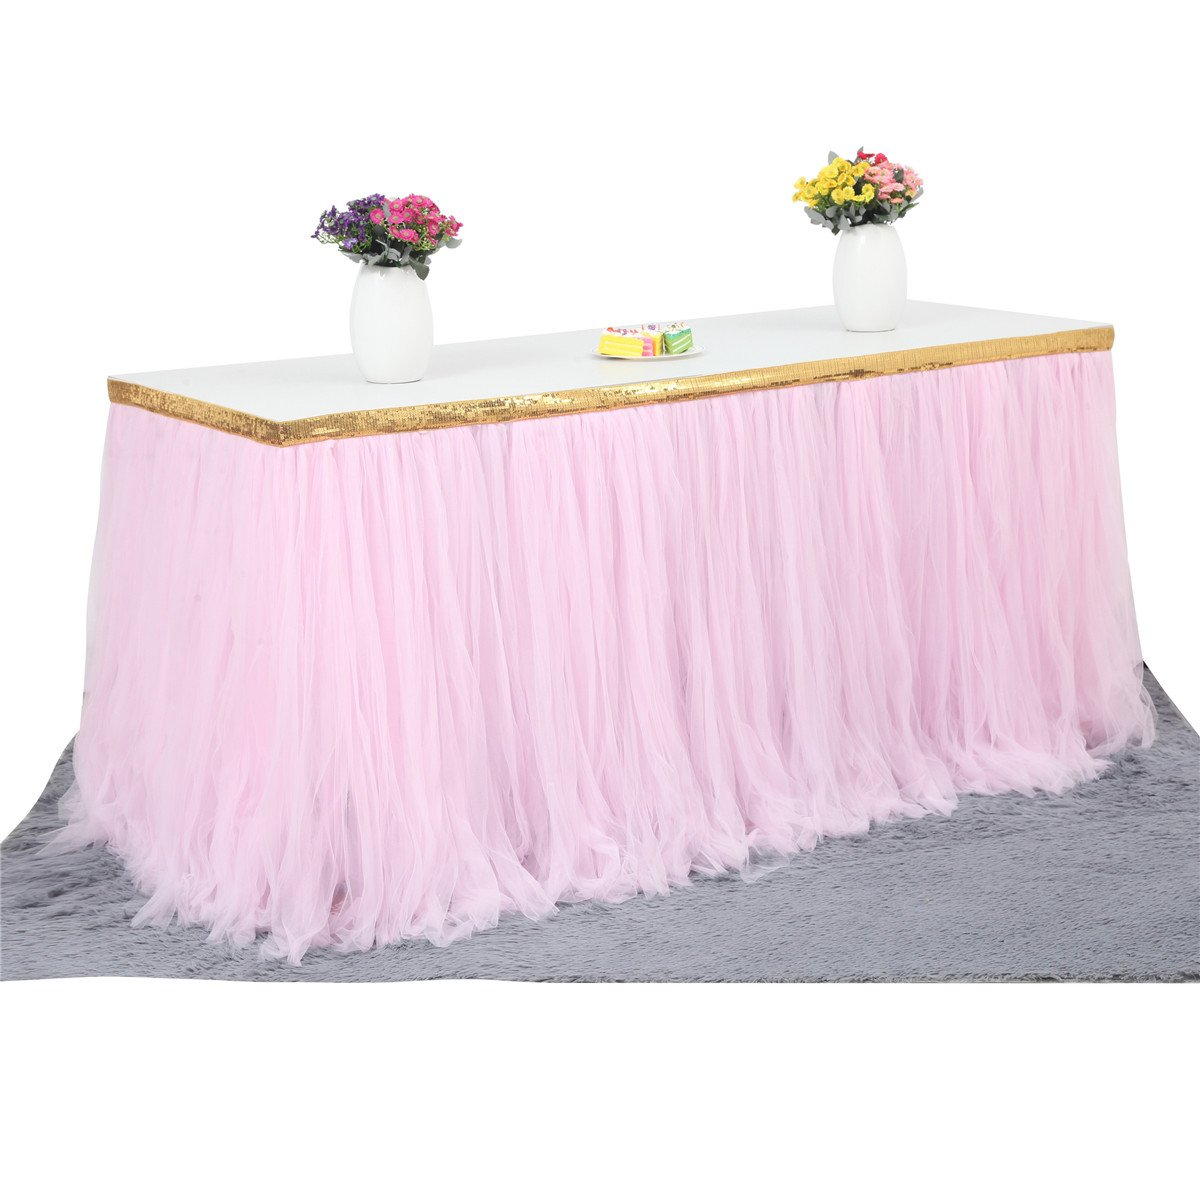 9ft Gold/Pink Tulle Table Skirt Tutu Table Skirts Wedding Birthday Baby Shower Party Table Skirting by HB HBB MAGIC (Image #2)